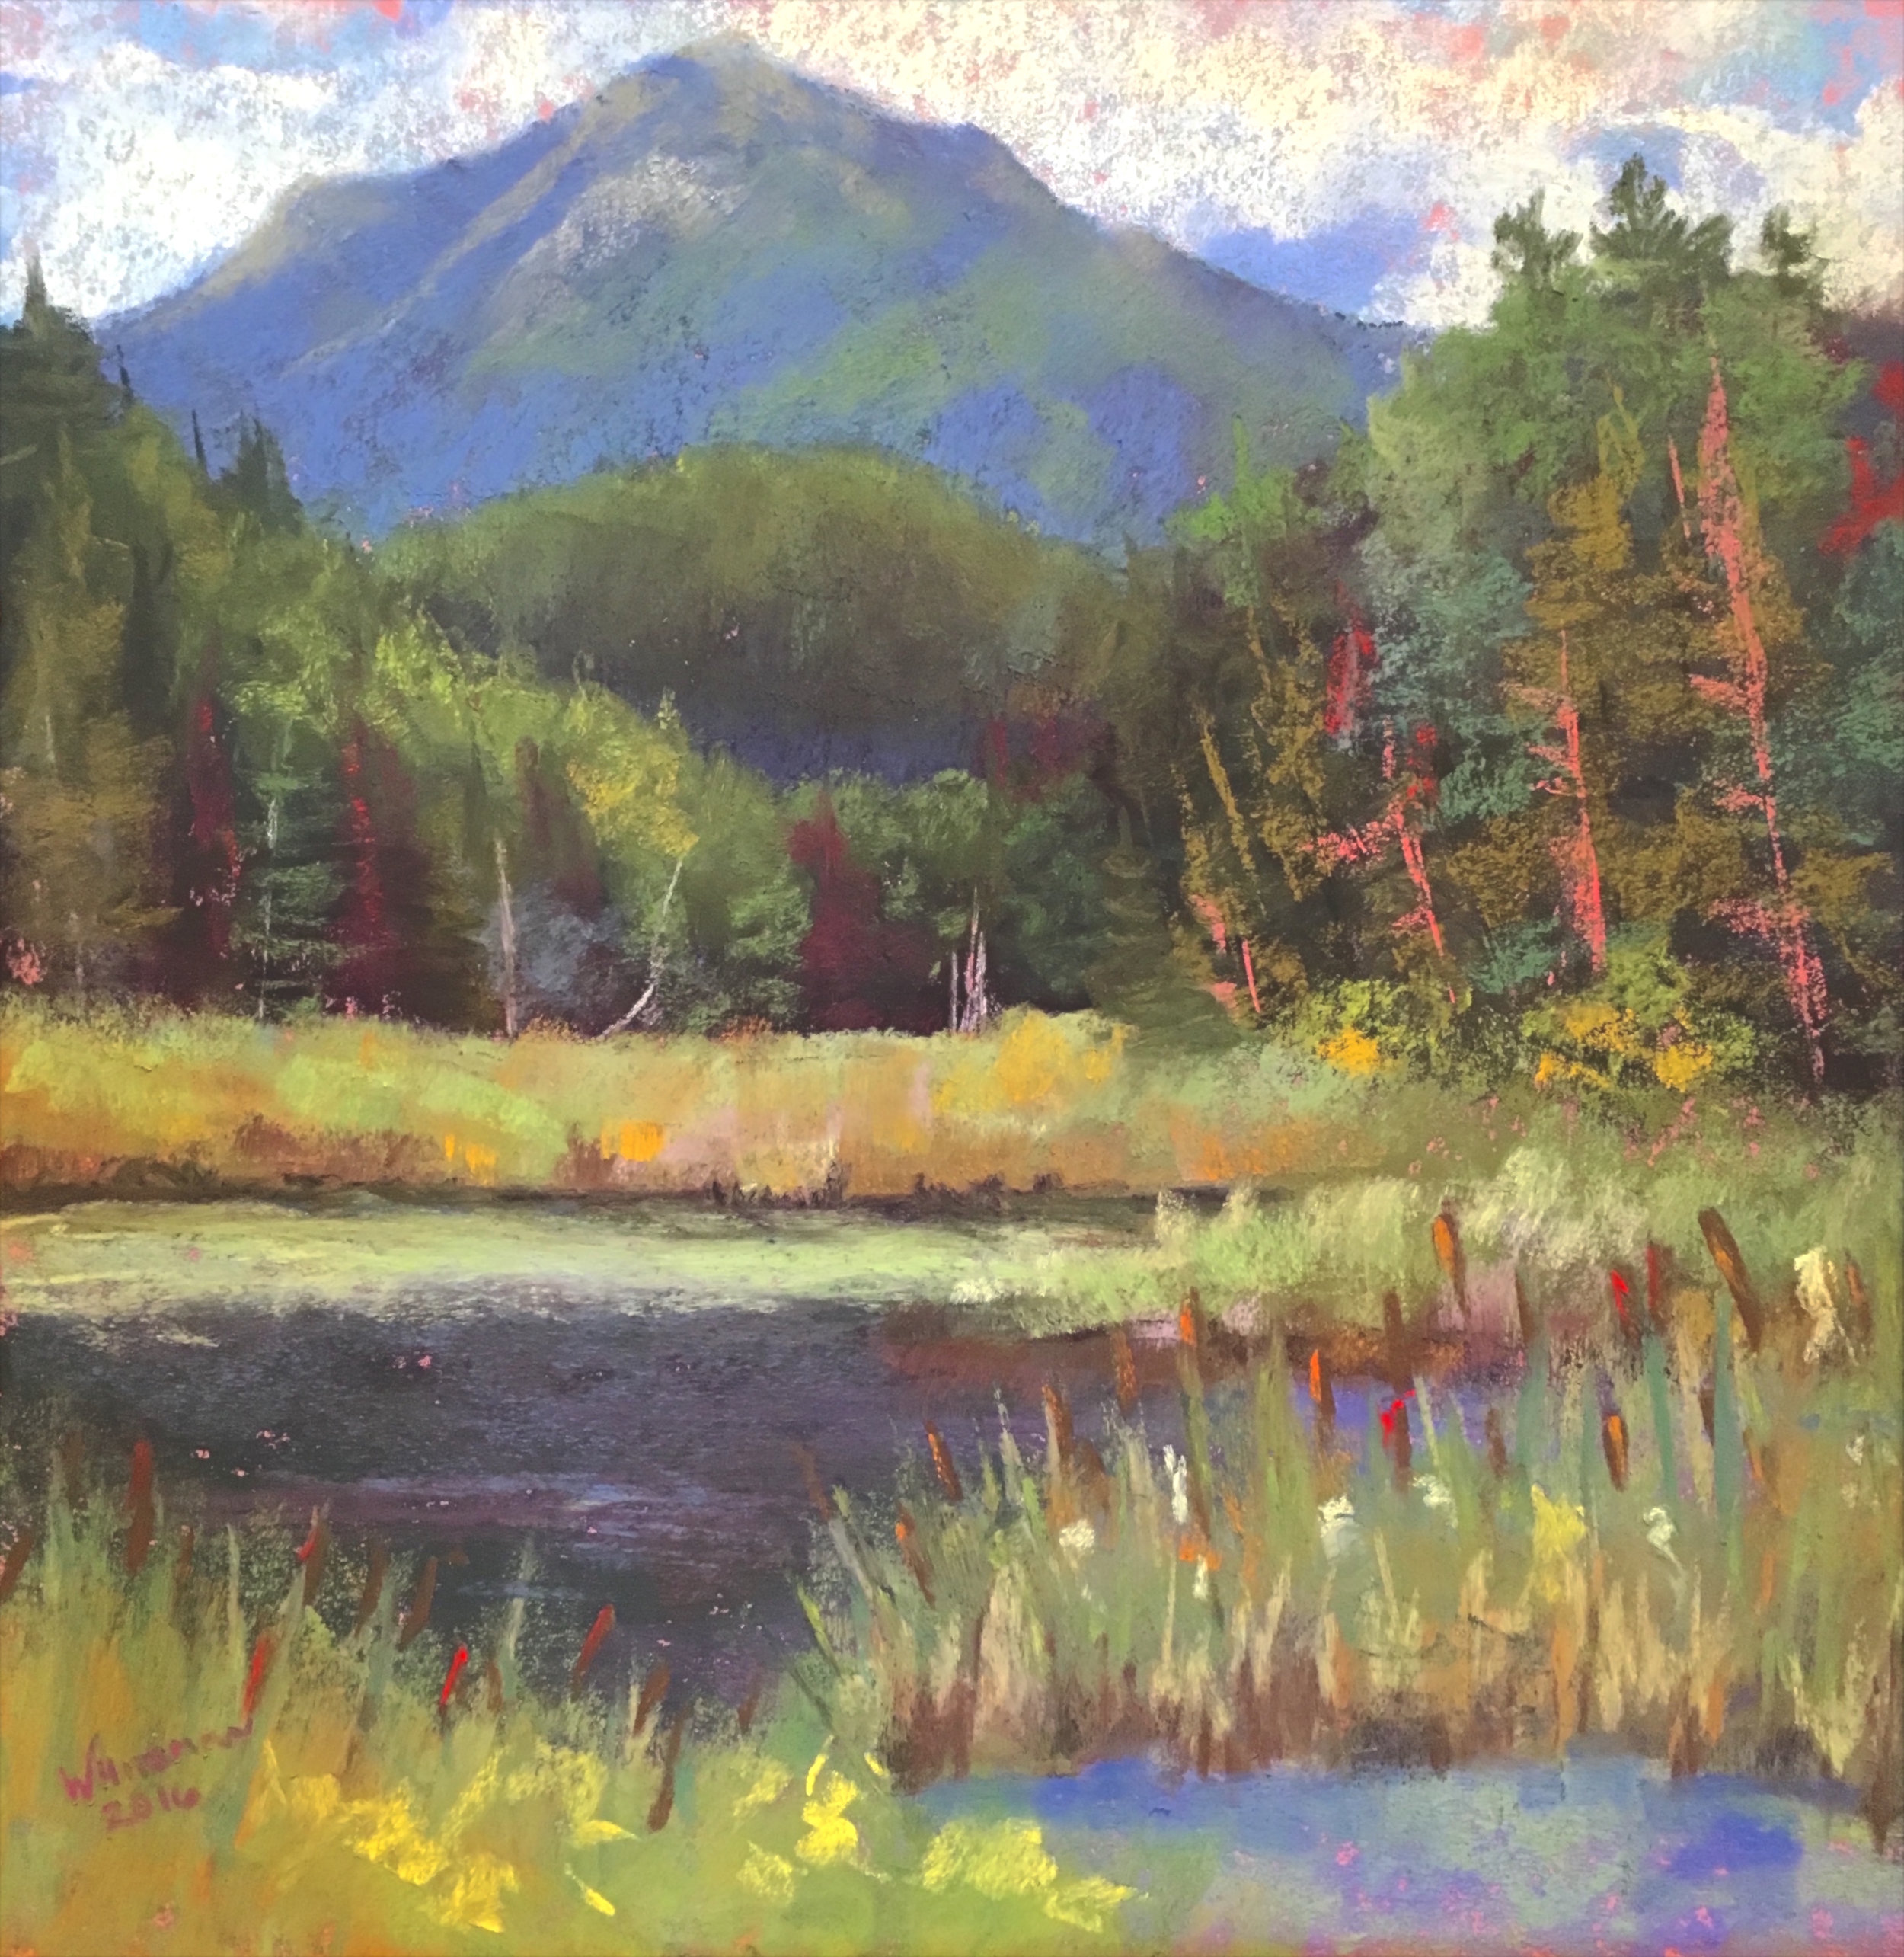 Plein Air Painting from the Adirondack Plein Air Festival, 2016